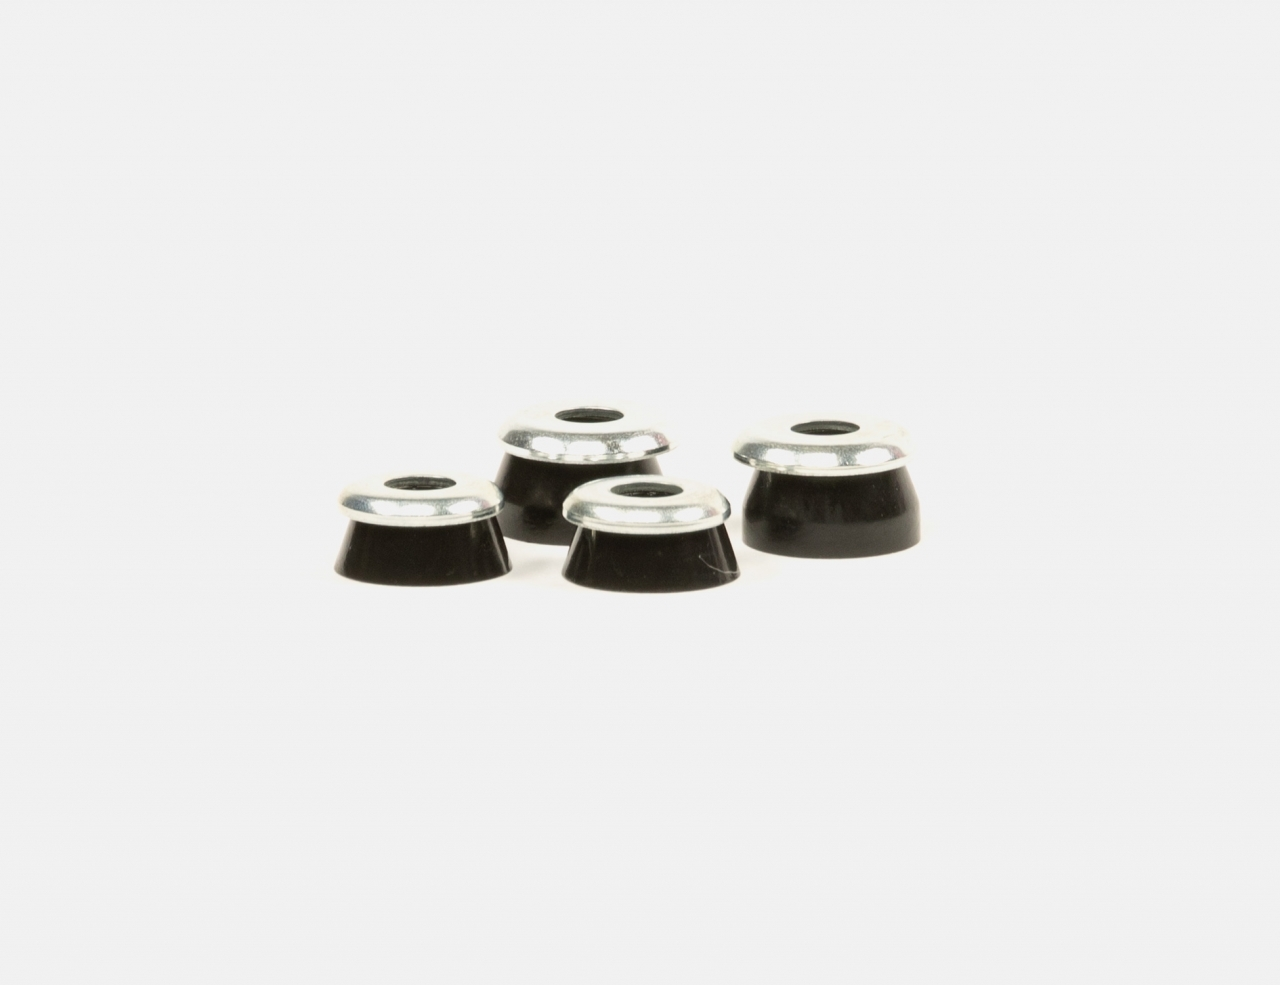 Independent Standard Conical Cushions Hard 94A Bushings - Black